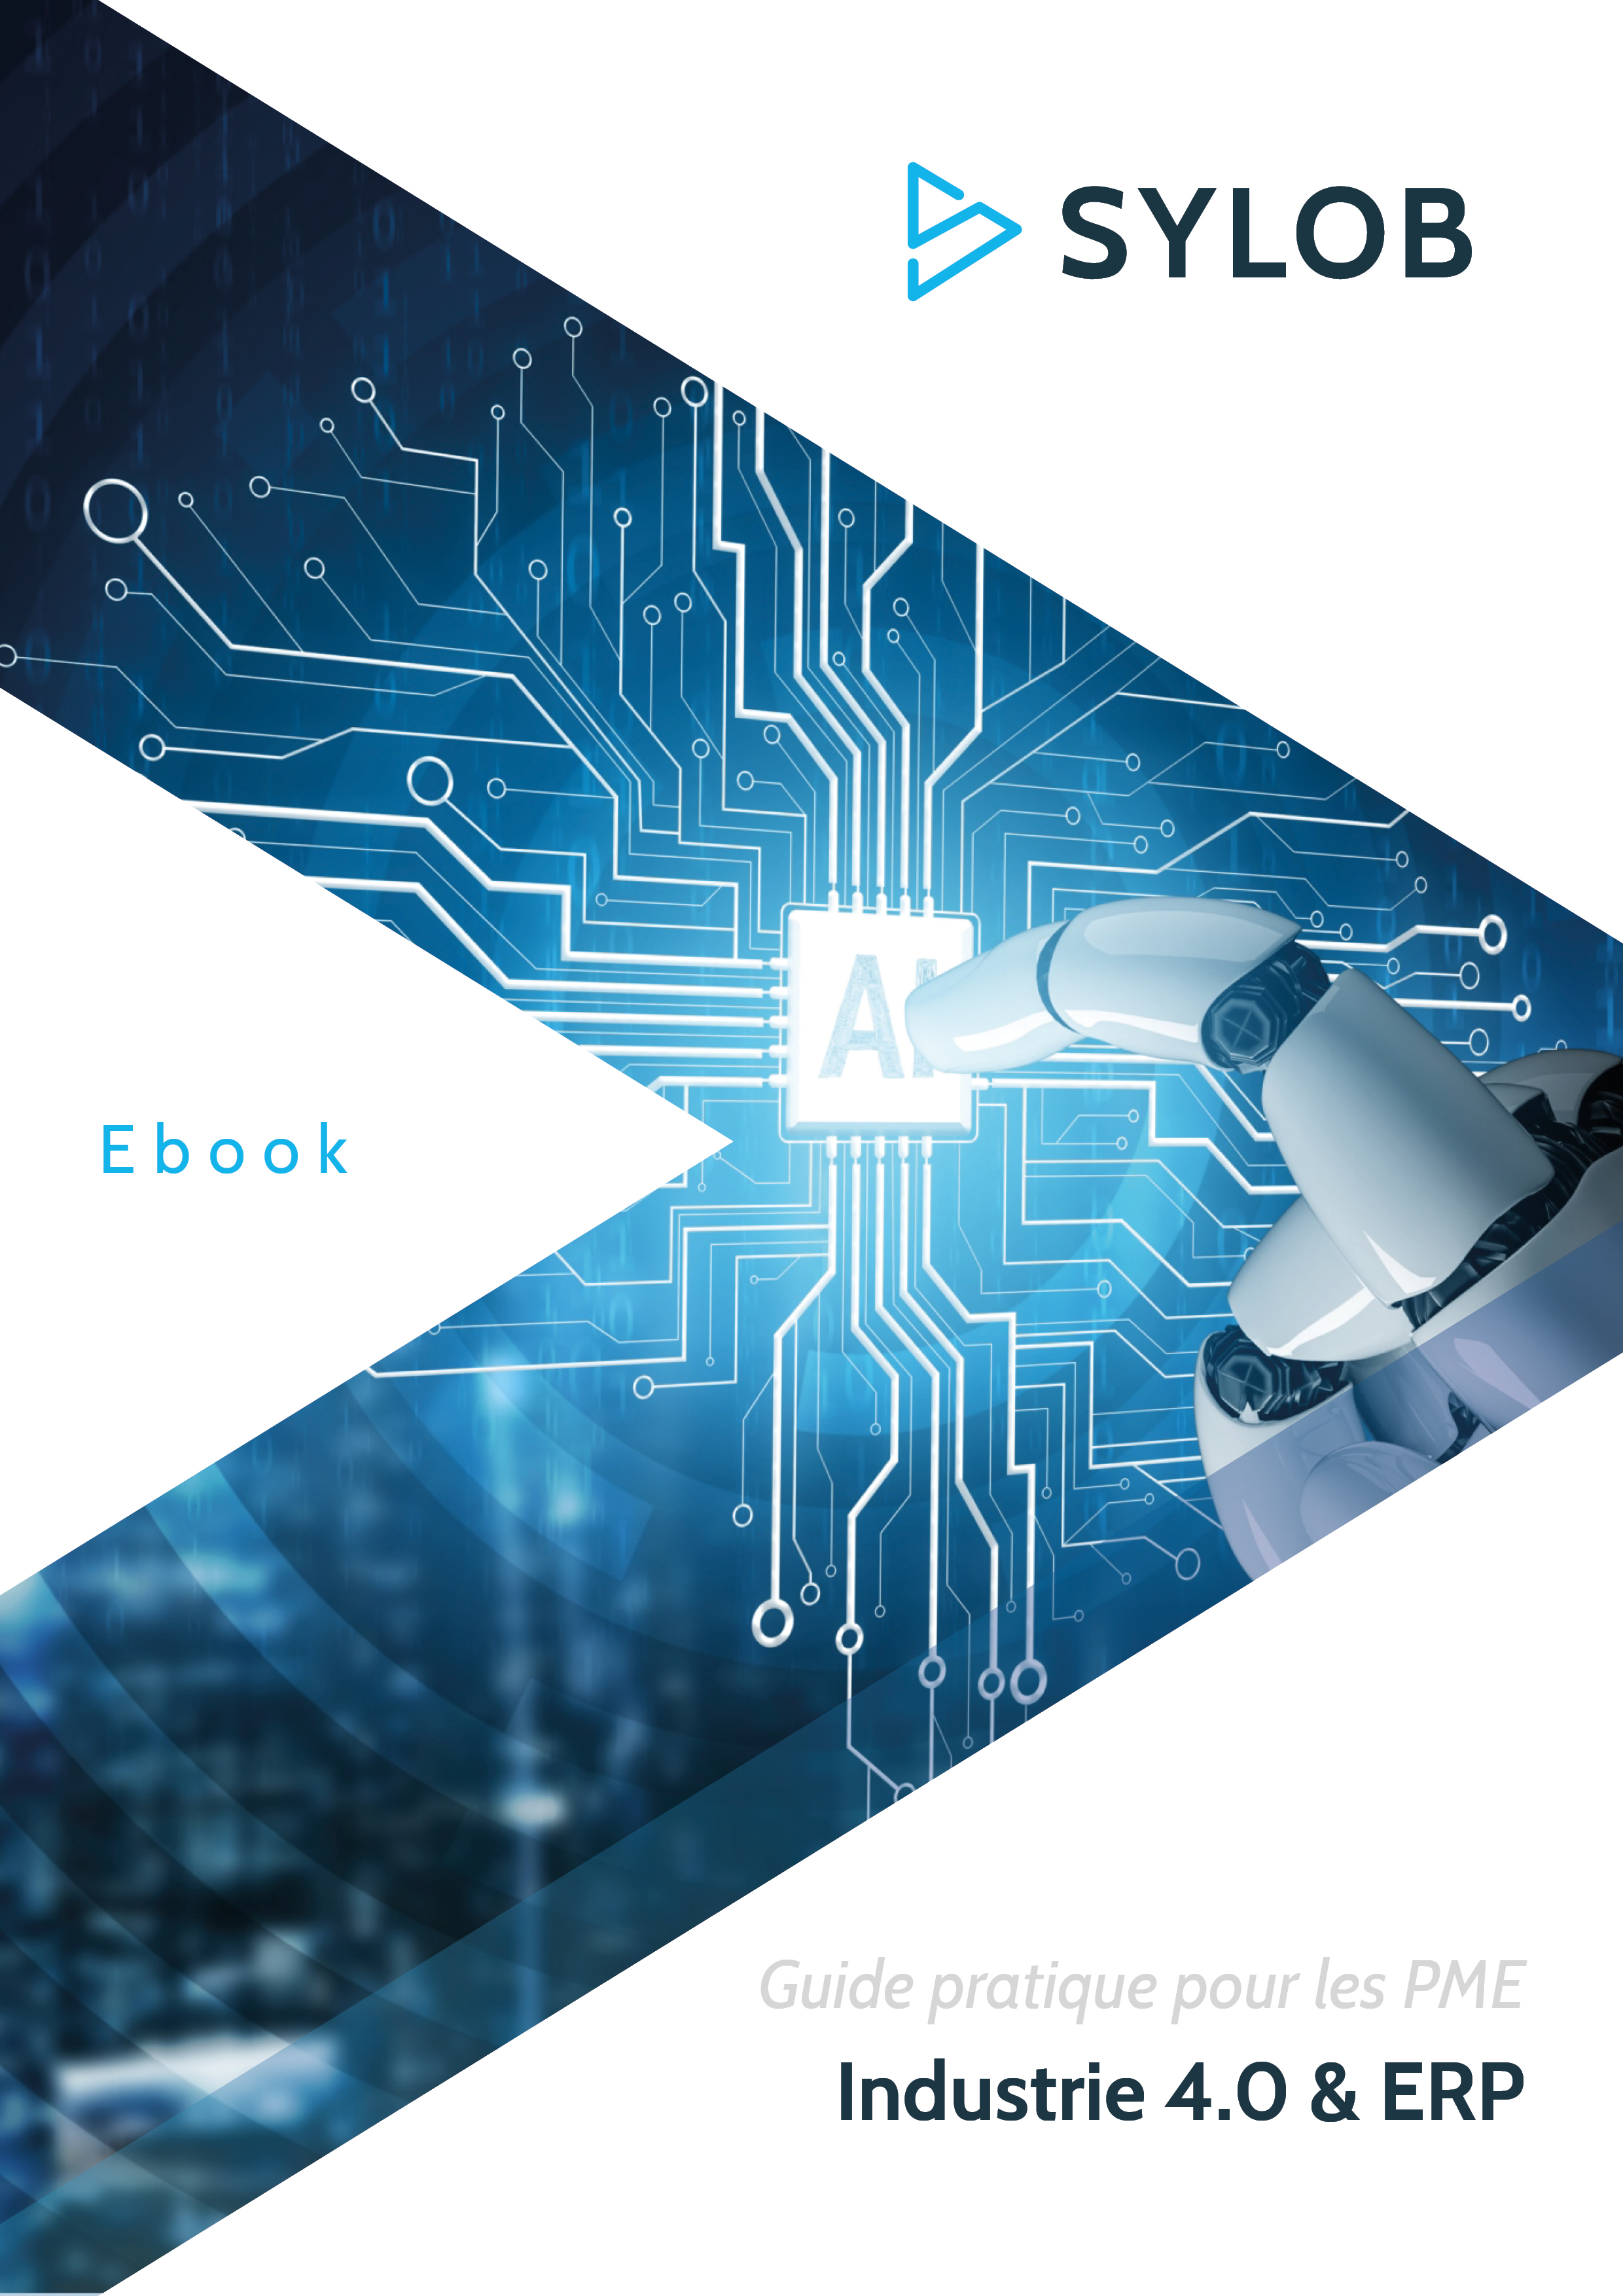 Couv Ebook - Industrie 4.0 & ERP - SYLOB